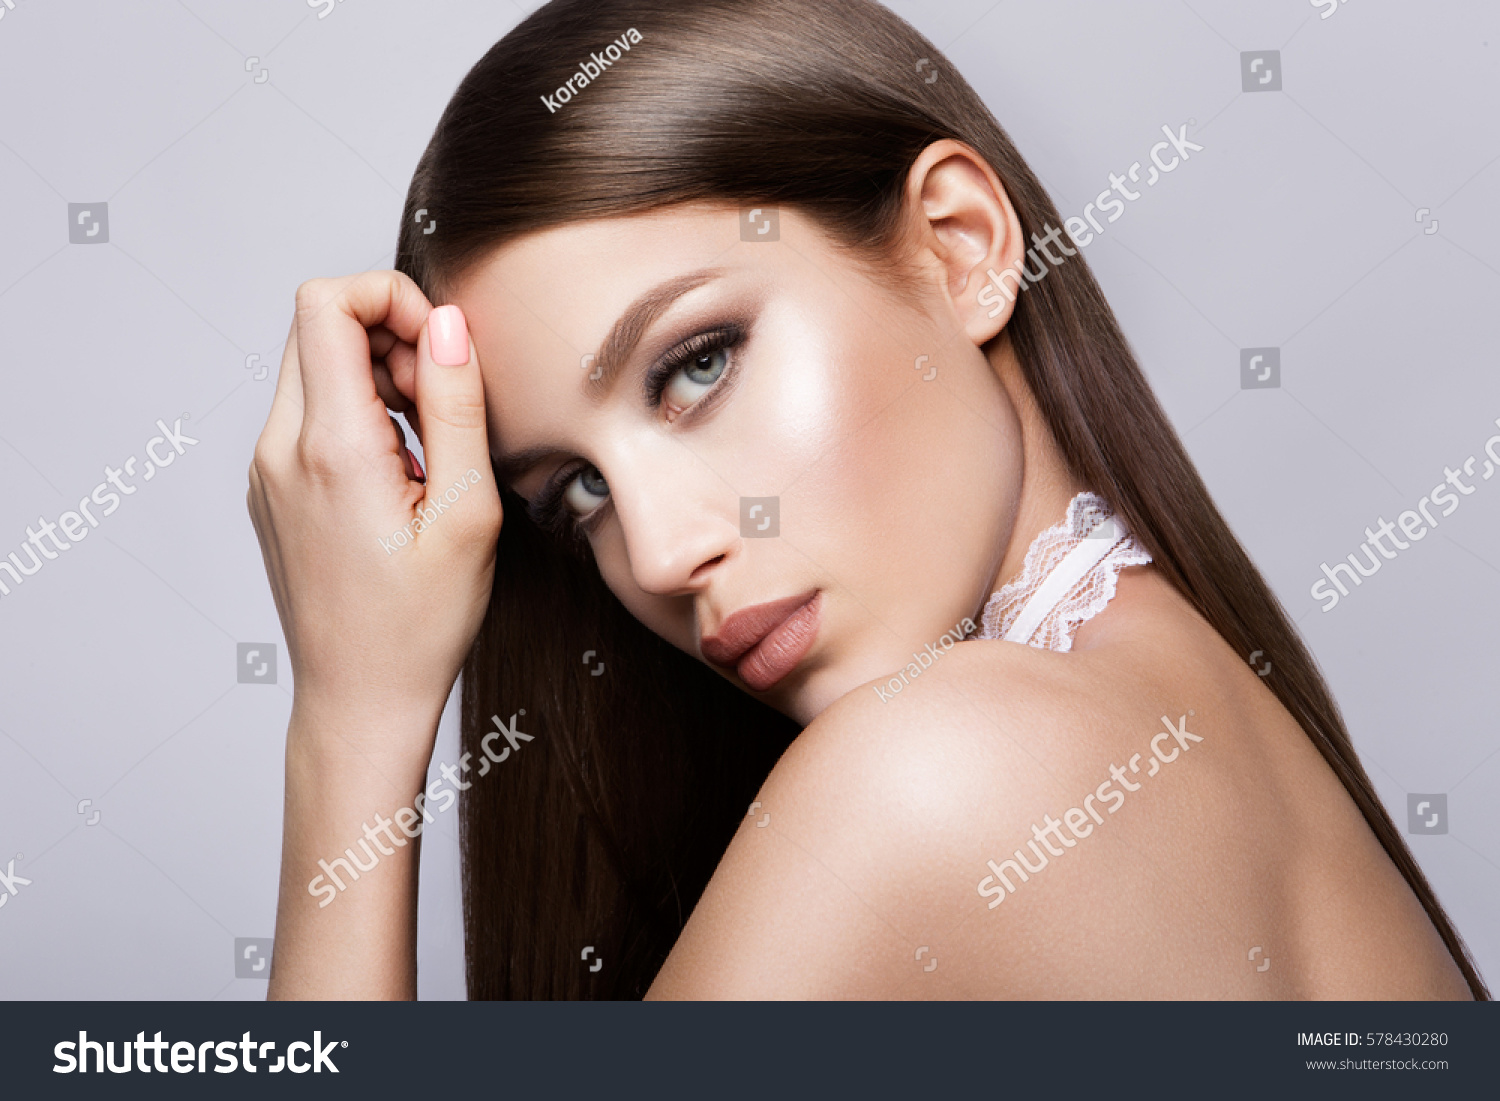 Beauty Model Woman Long Brown Hair Stock Photo 578430280 ...